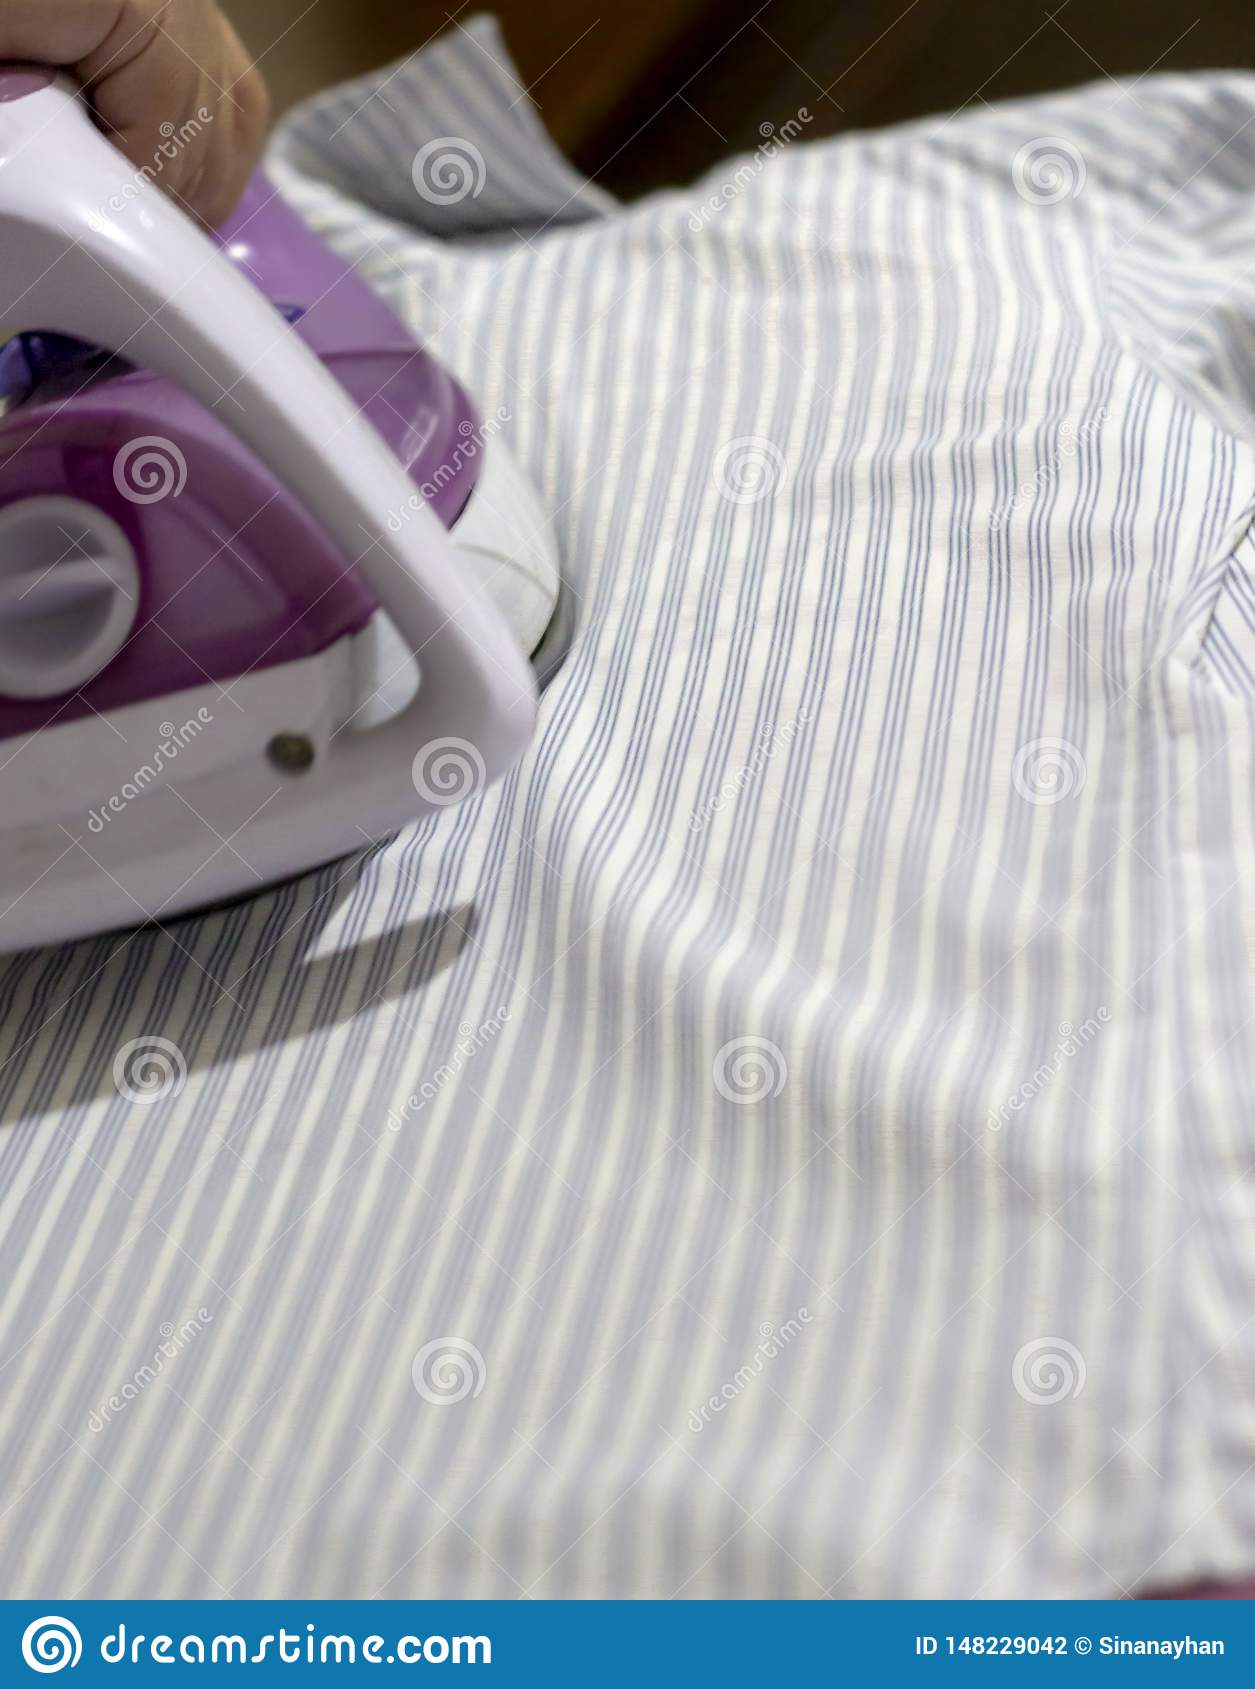 Ironing provides chic clothes for casual and formal life.